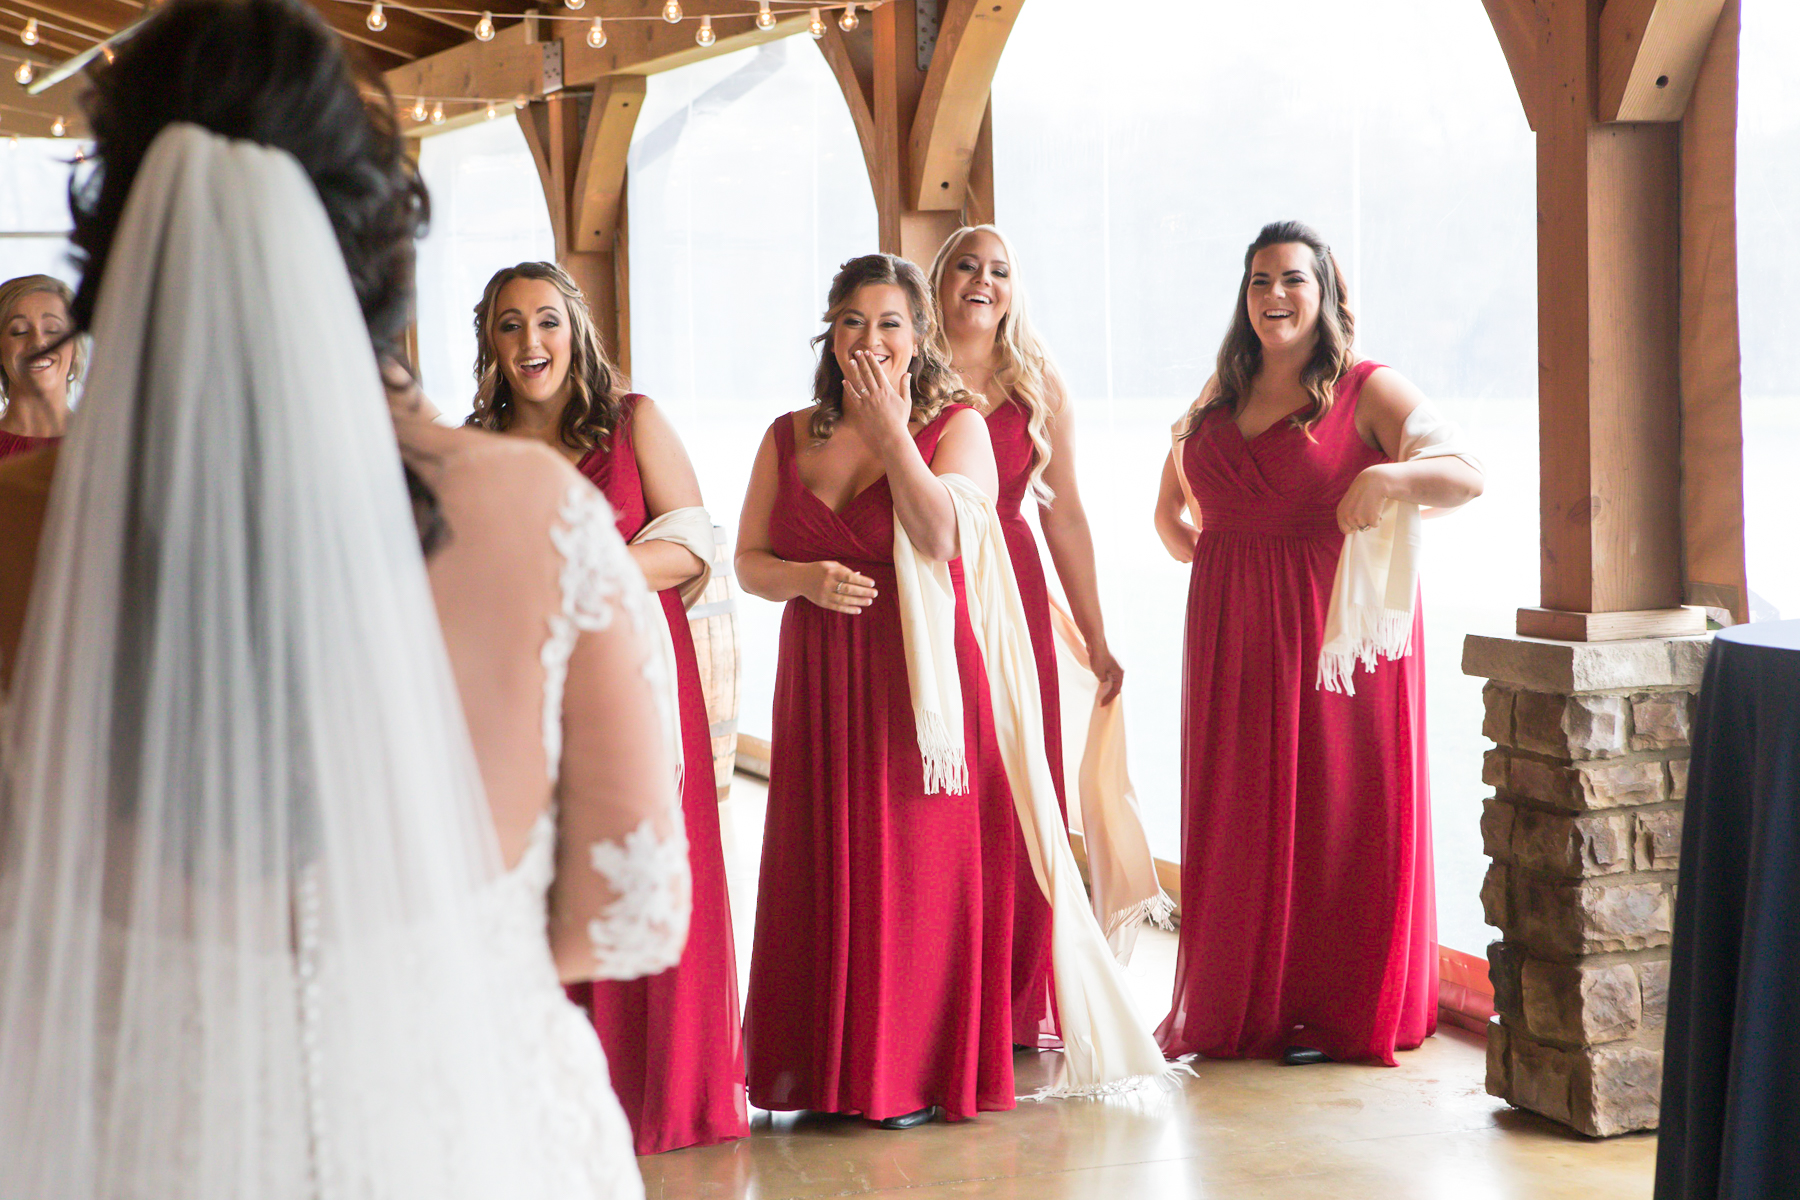 bridesmaids-reactions-to-first-look.jpg